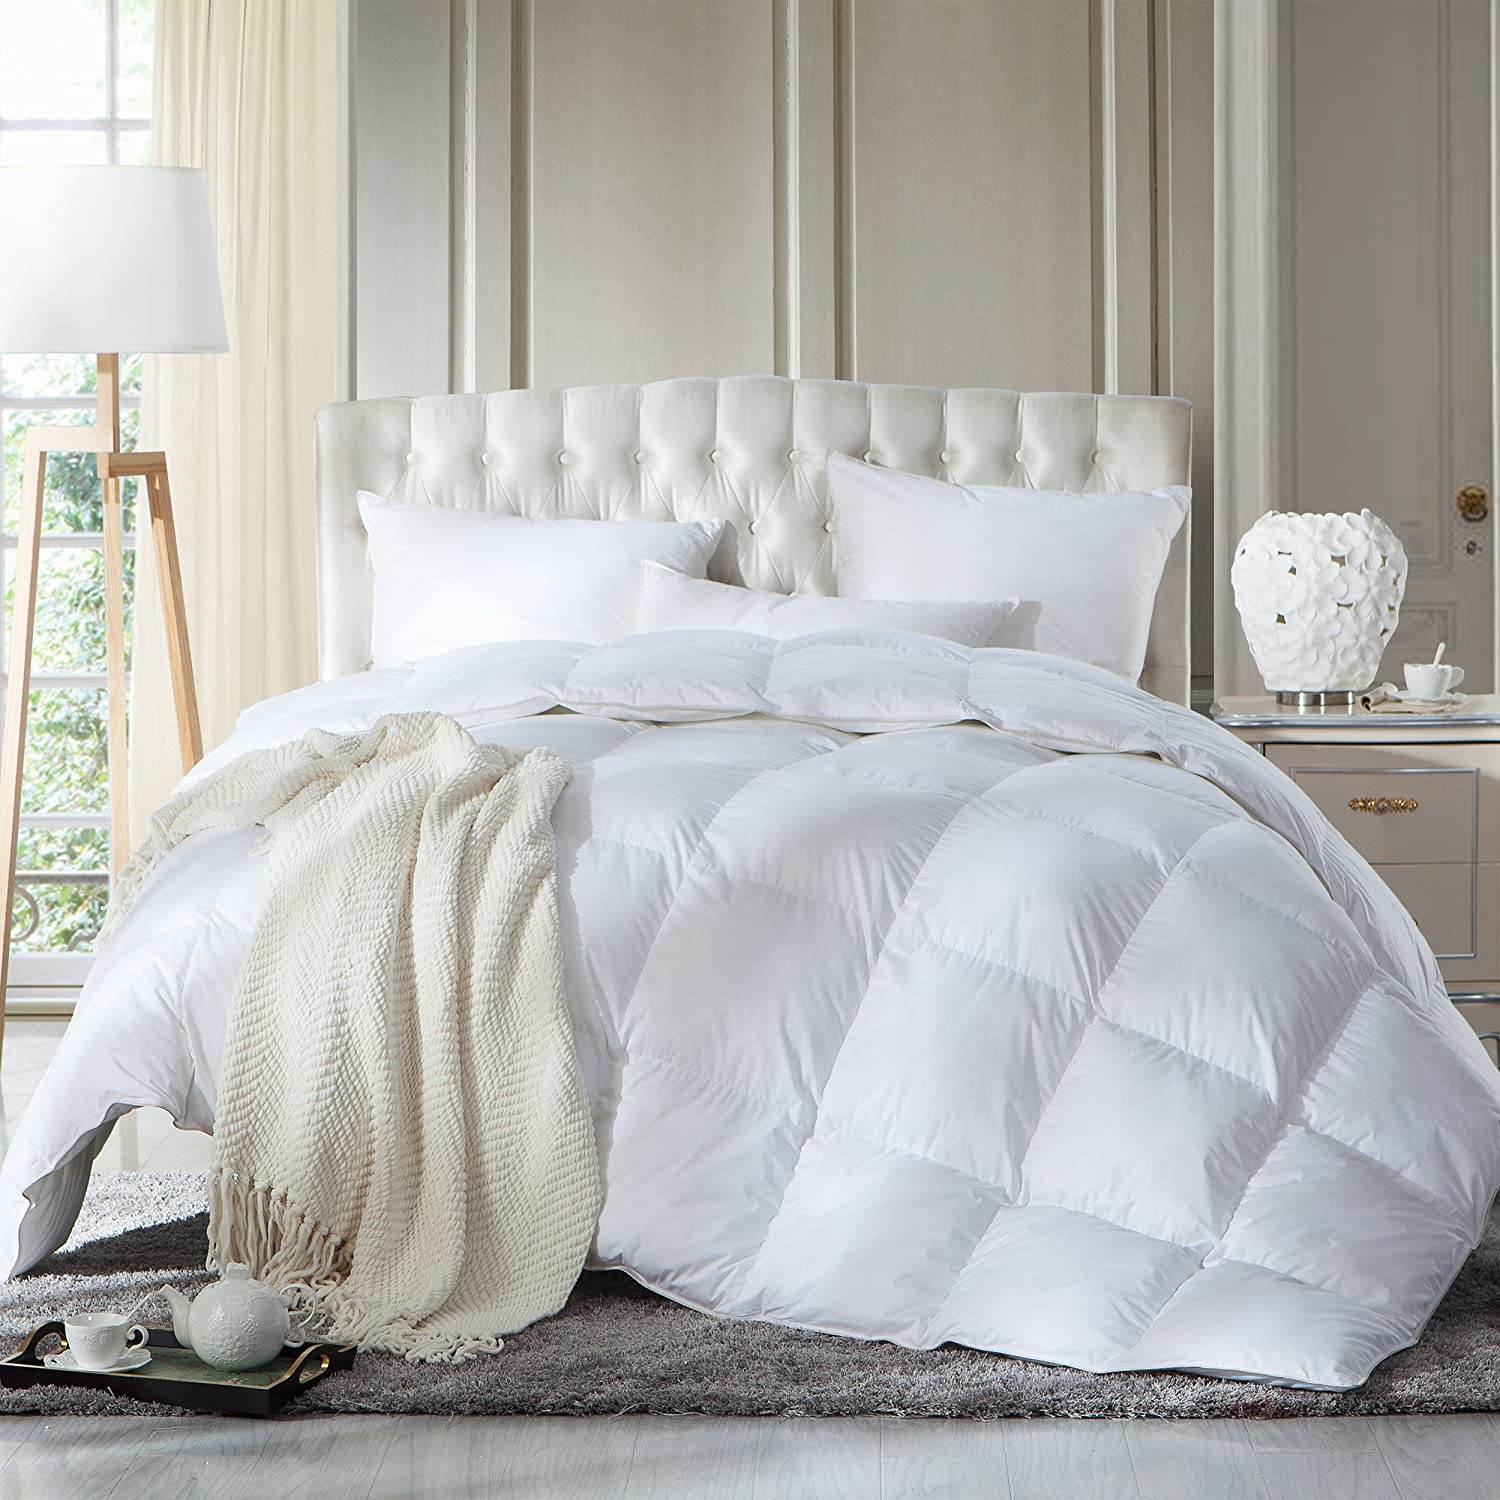 LUXURIOUS FULL / QUEEN Size Siberian GOOSE DOWN Comforter, Duvet Insert, 1200 Thread Count 100% Egyptian Cotton White Solid